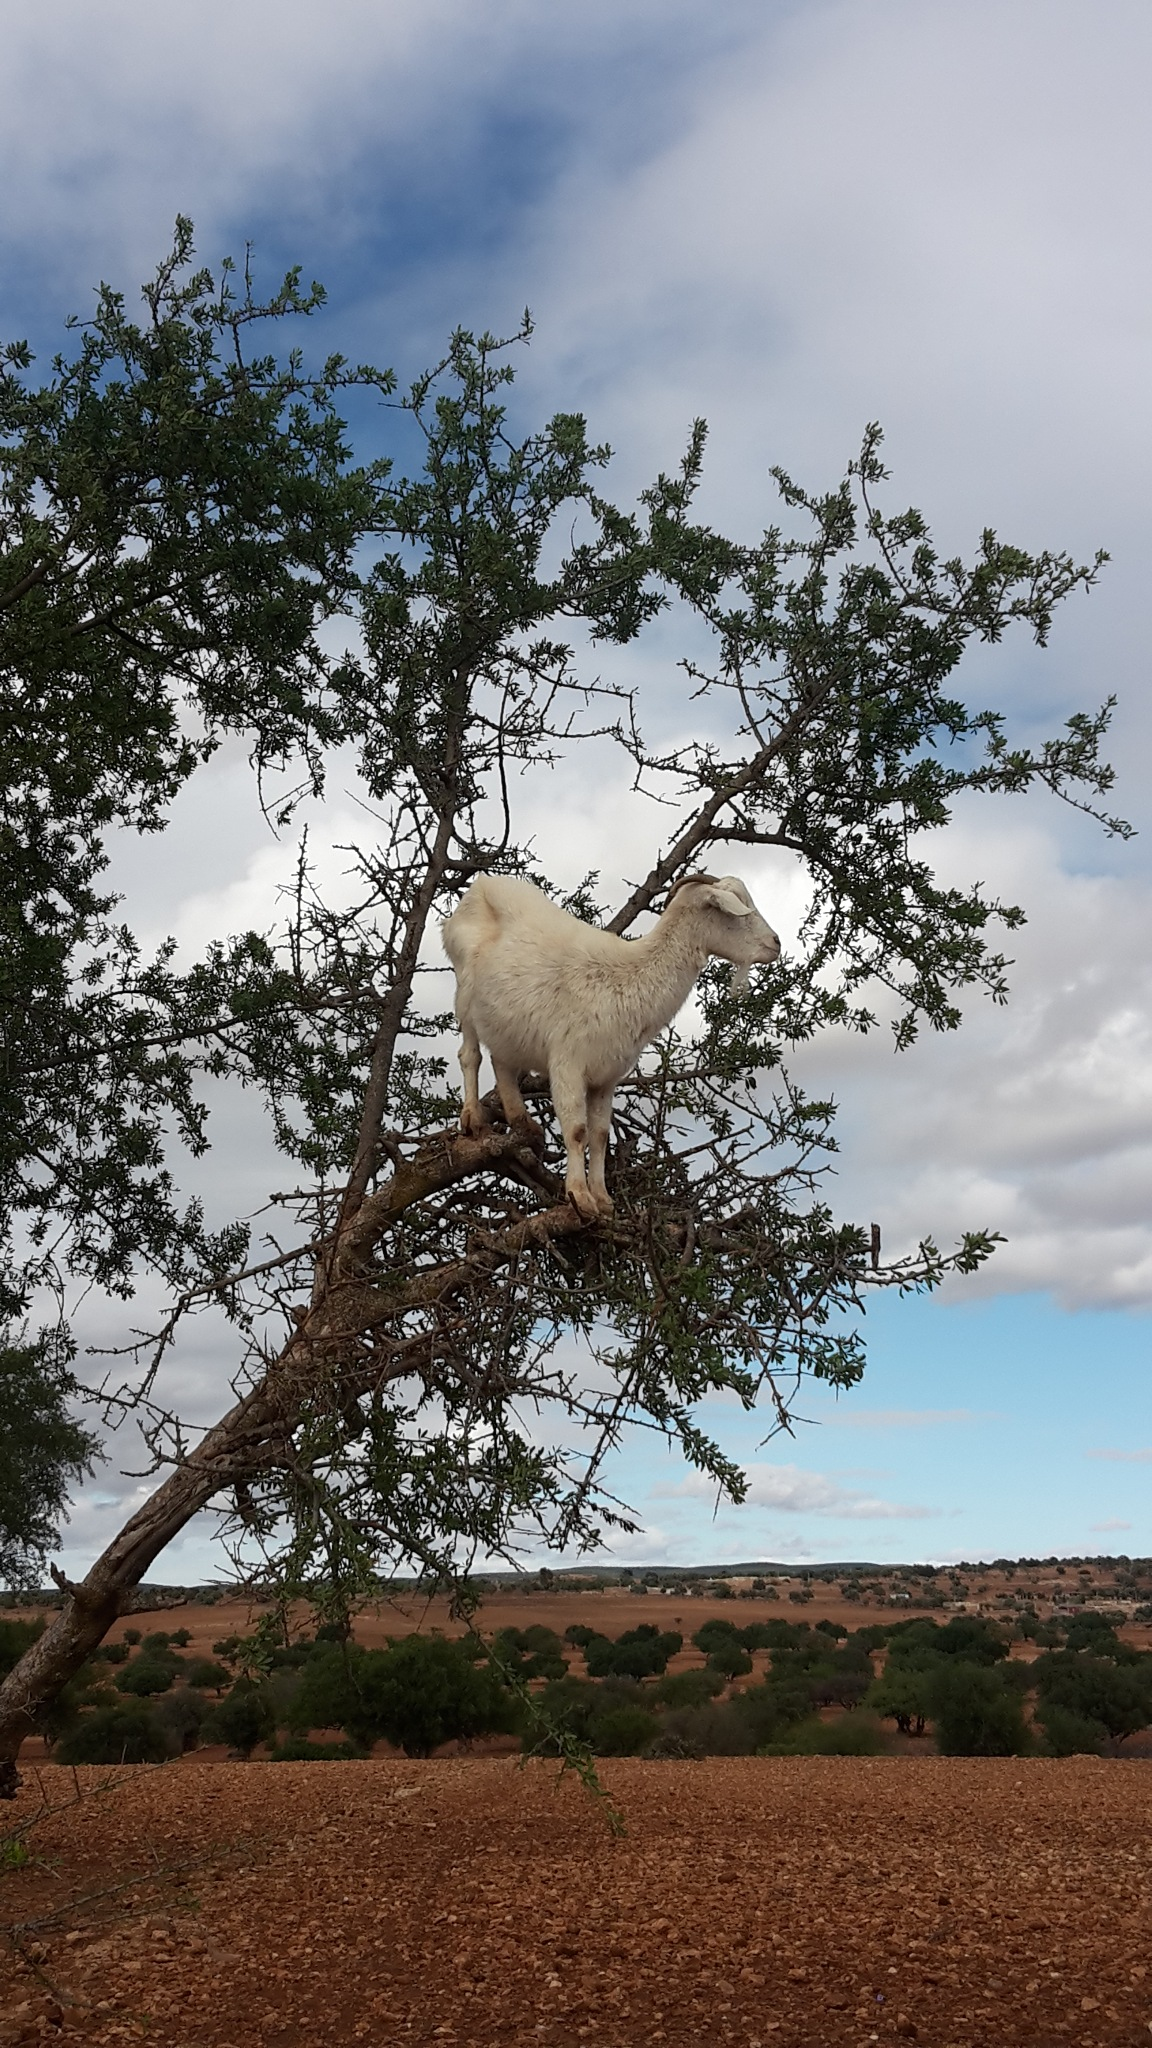 Goat on a tree by husky.blue.river